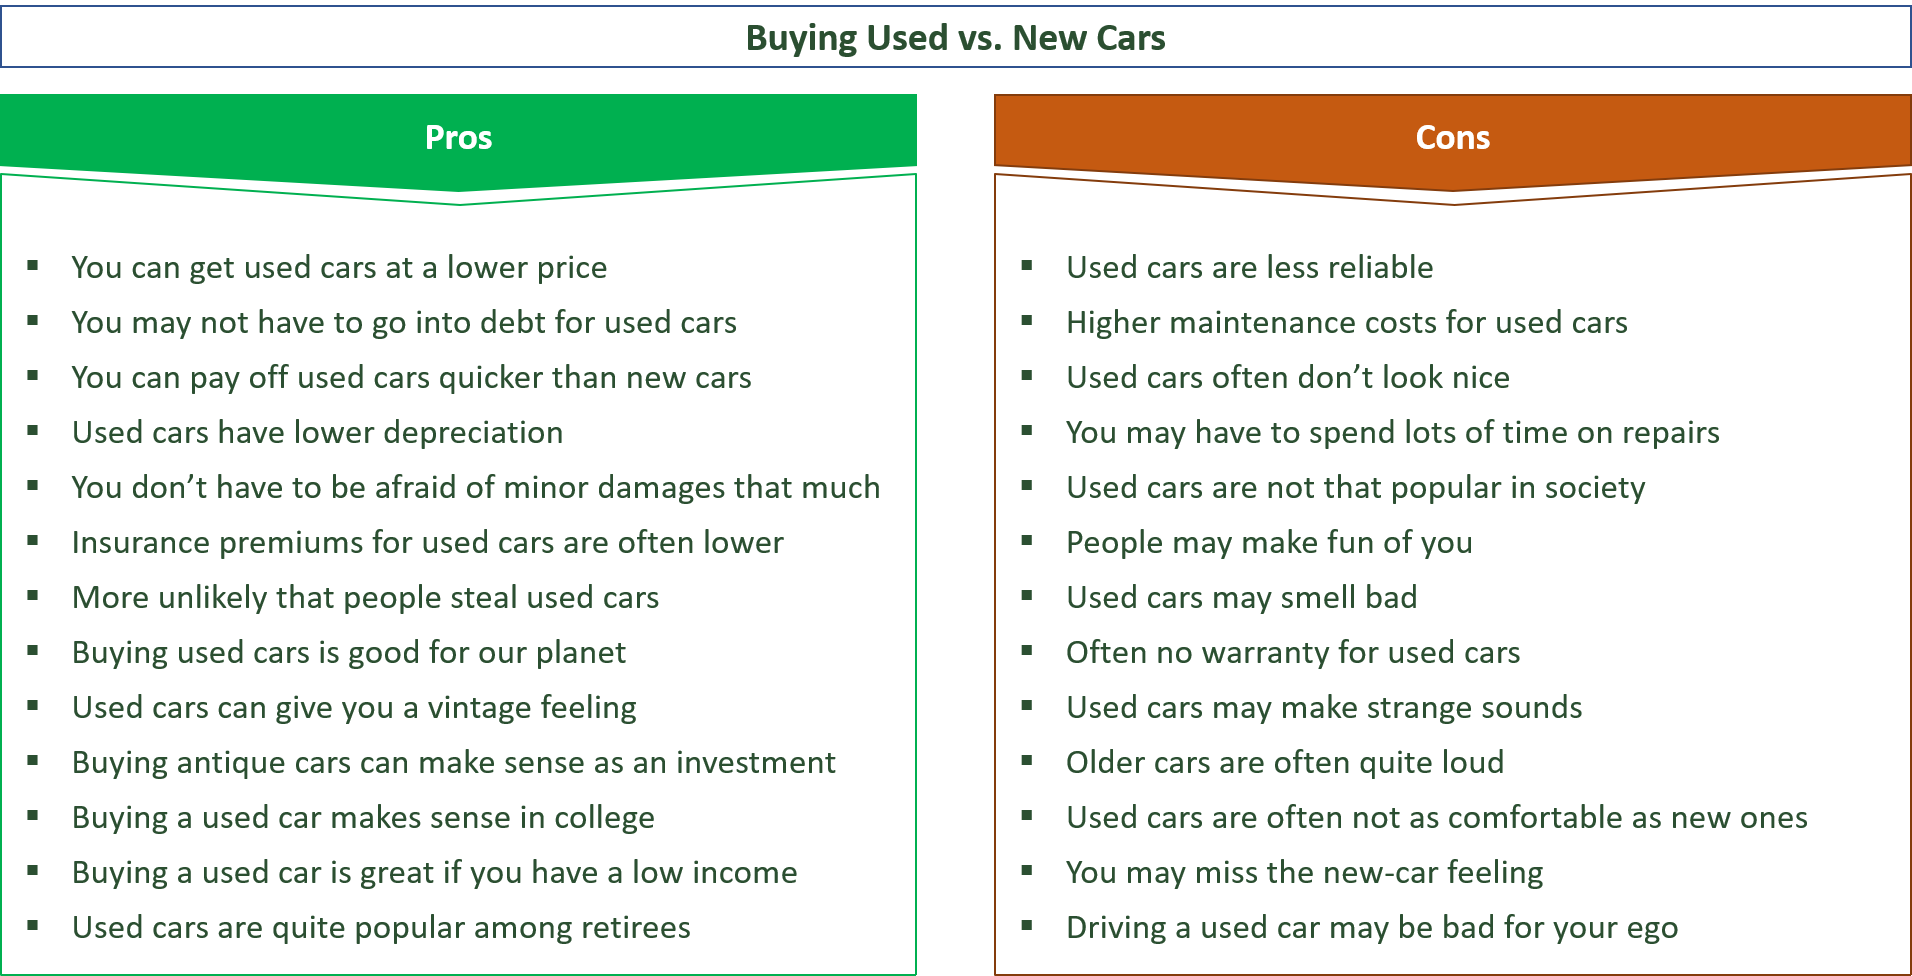 advantages and disadvantages of used cars vs. new cars